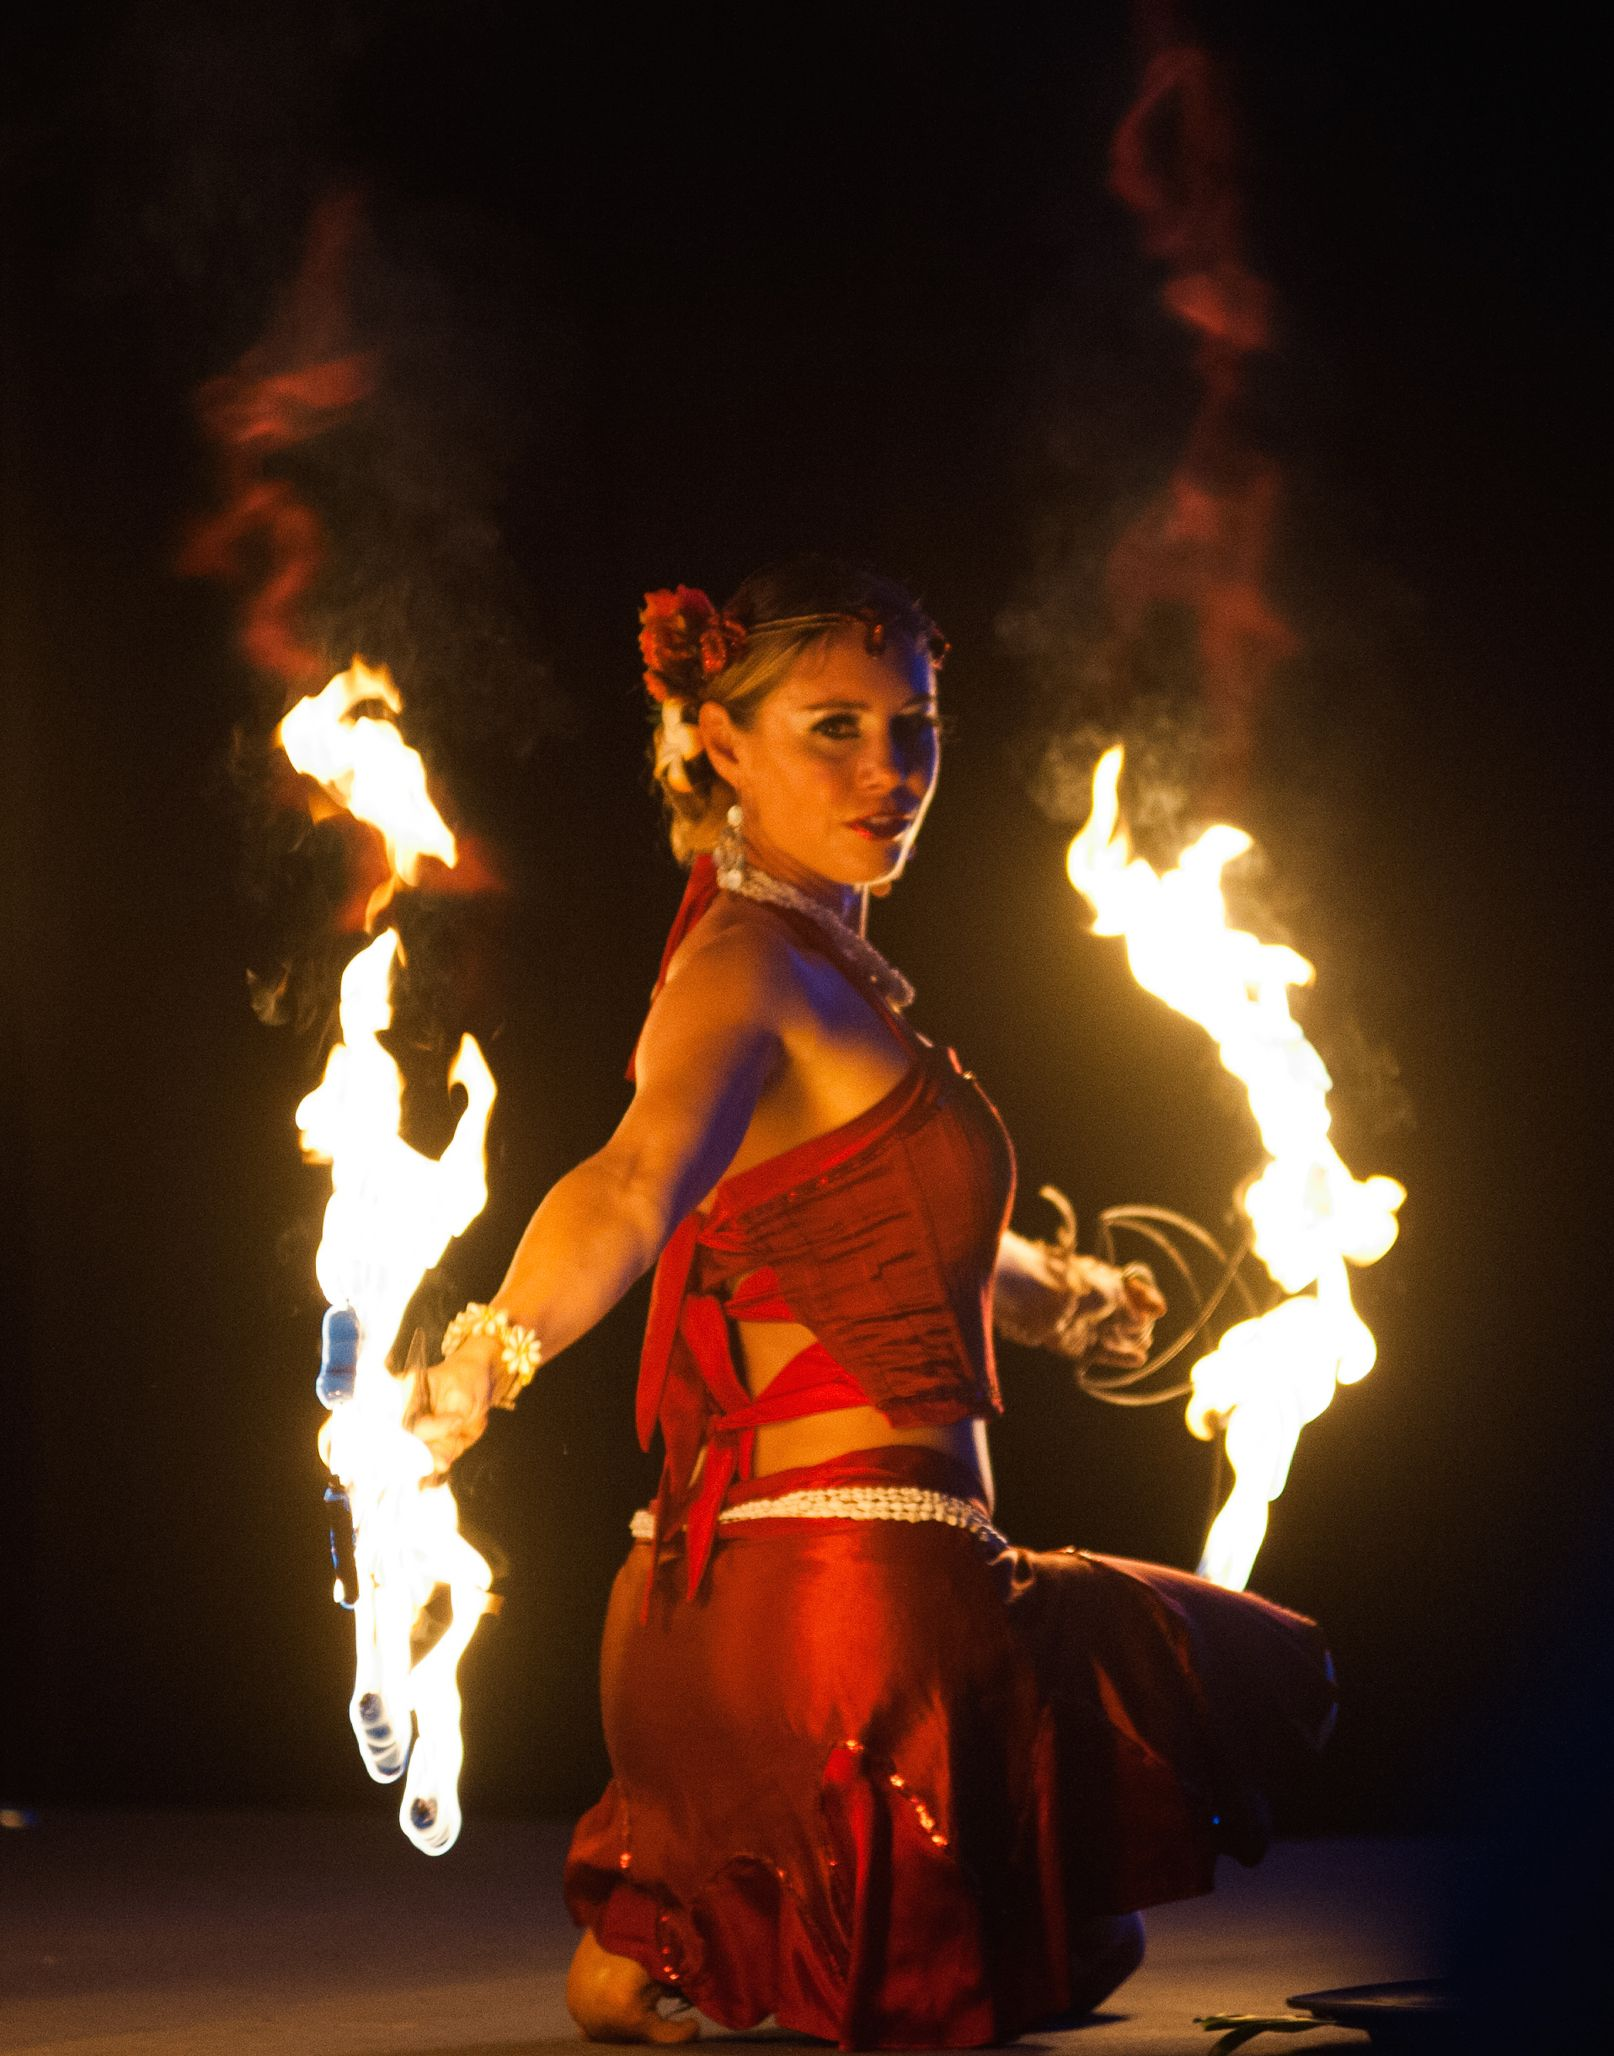 Fire Dancing Photography From Soul Fire Productions In Kauai Hawaii Adding Fire Dancing And More To Kauai Haw Dance Photography Dancer Photography Fire Dancer